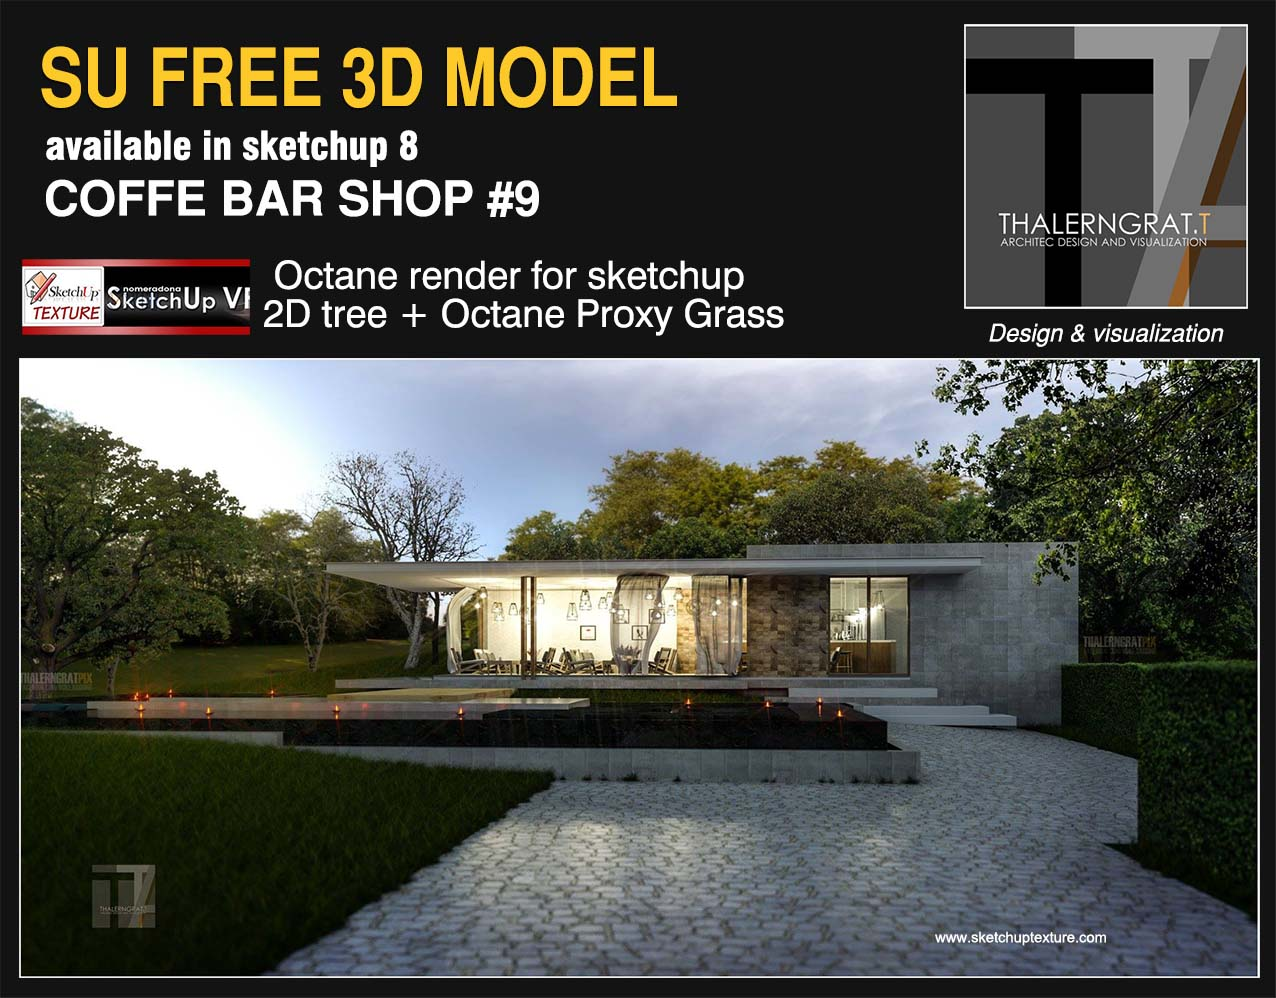 sketchup free 3d model coffee shop bar #9_by Thalerngrat T. Nuke_ octane render